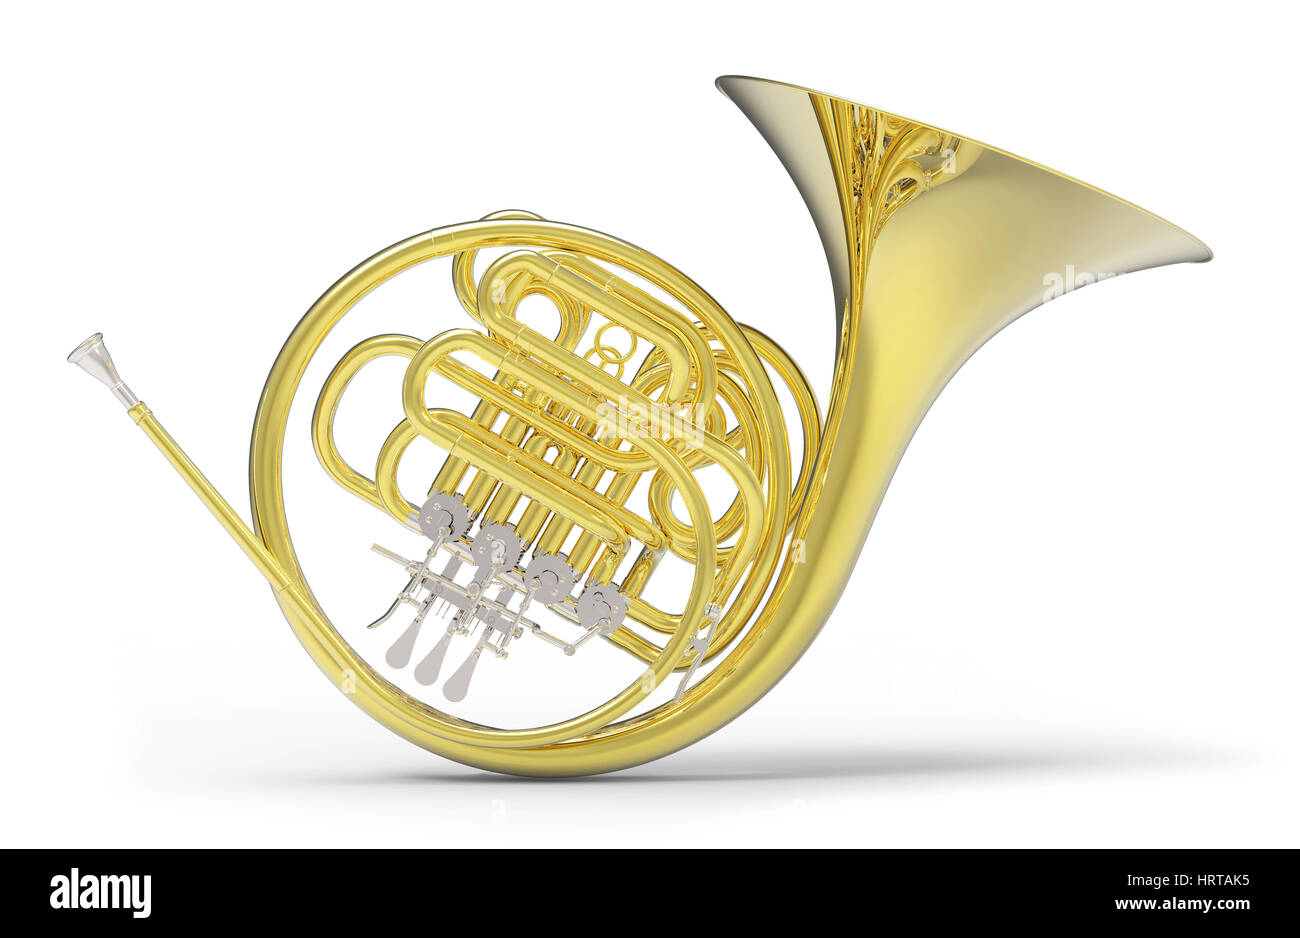 French horn on white background 3D rendering - Stock Image